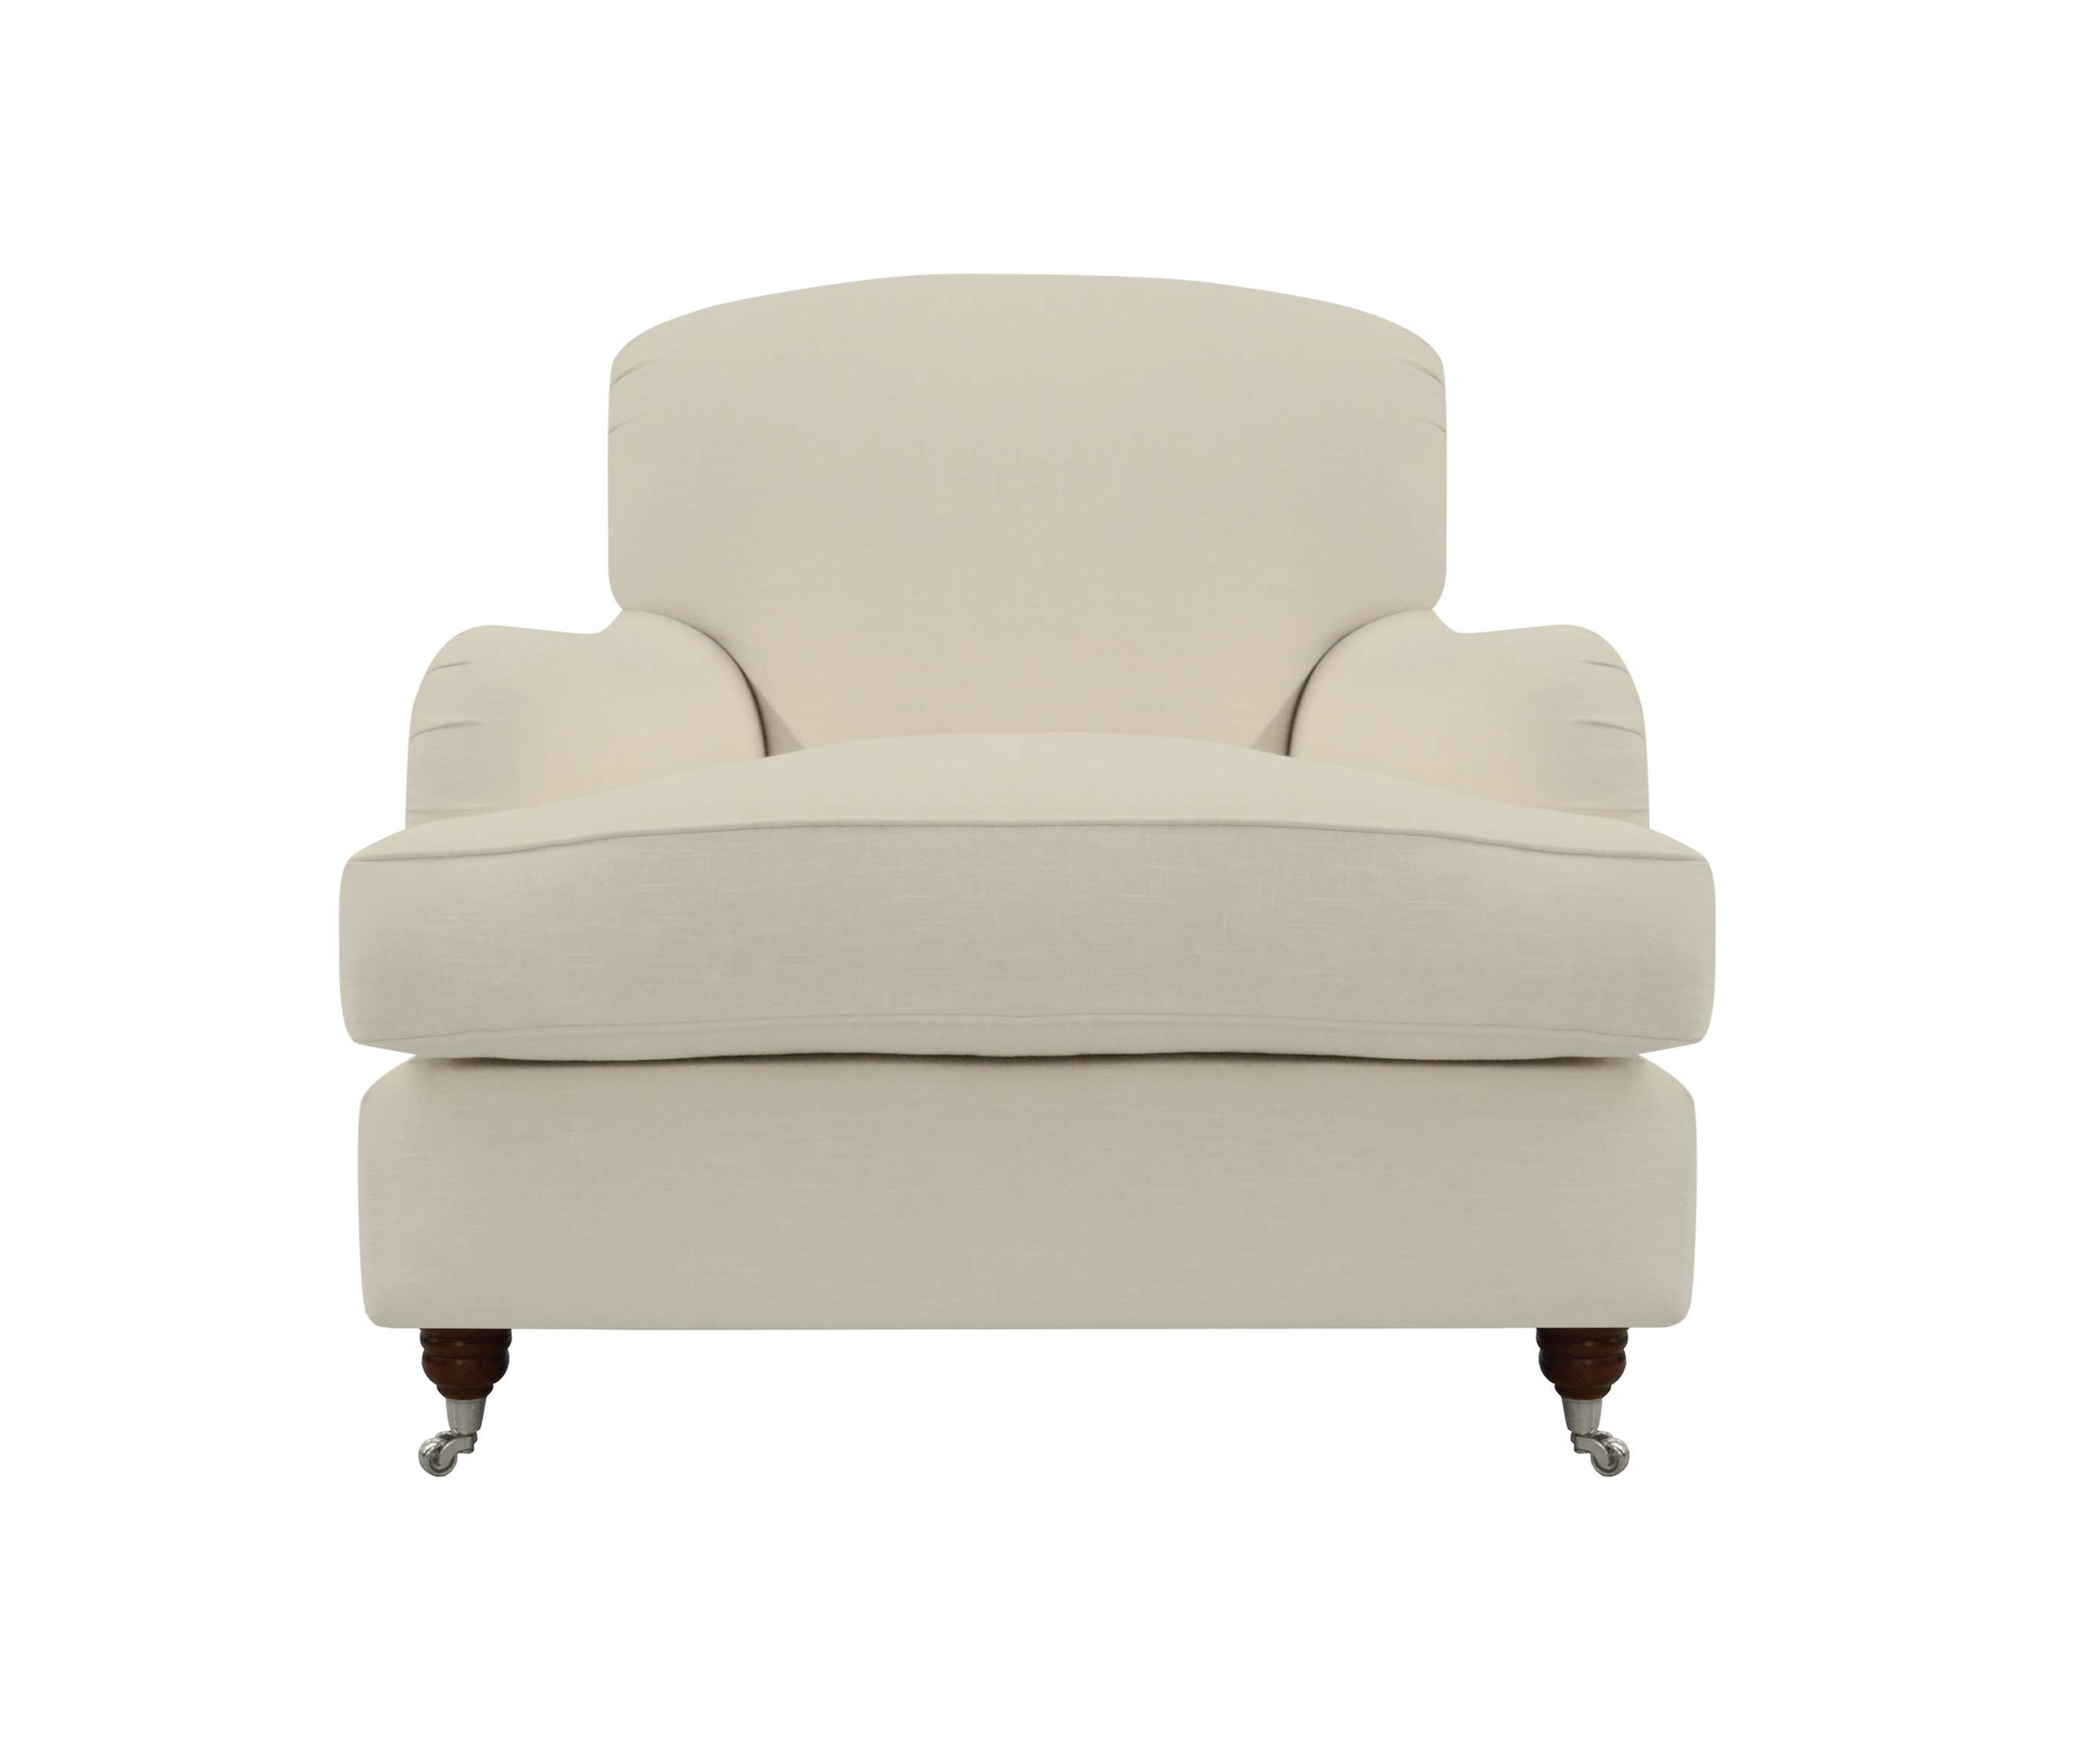 Marks Spencer Ramsden Small Corner Sofa Right Hand